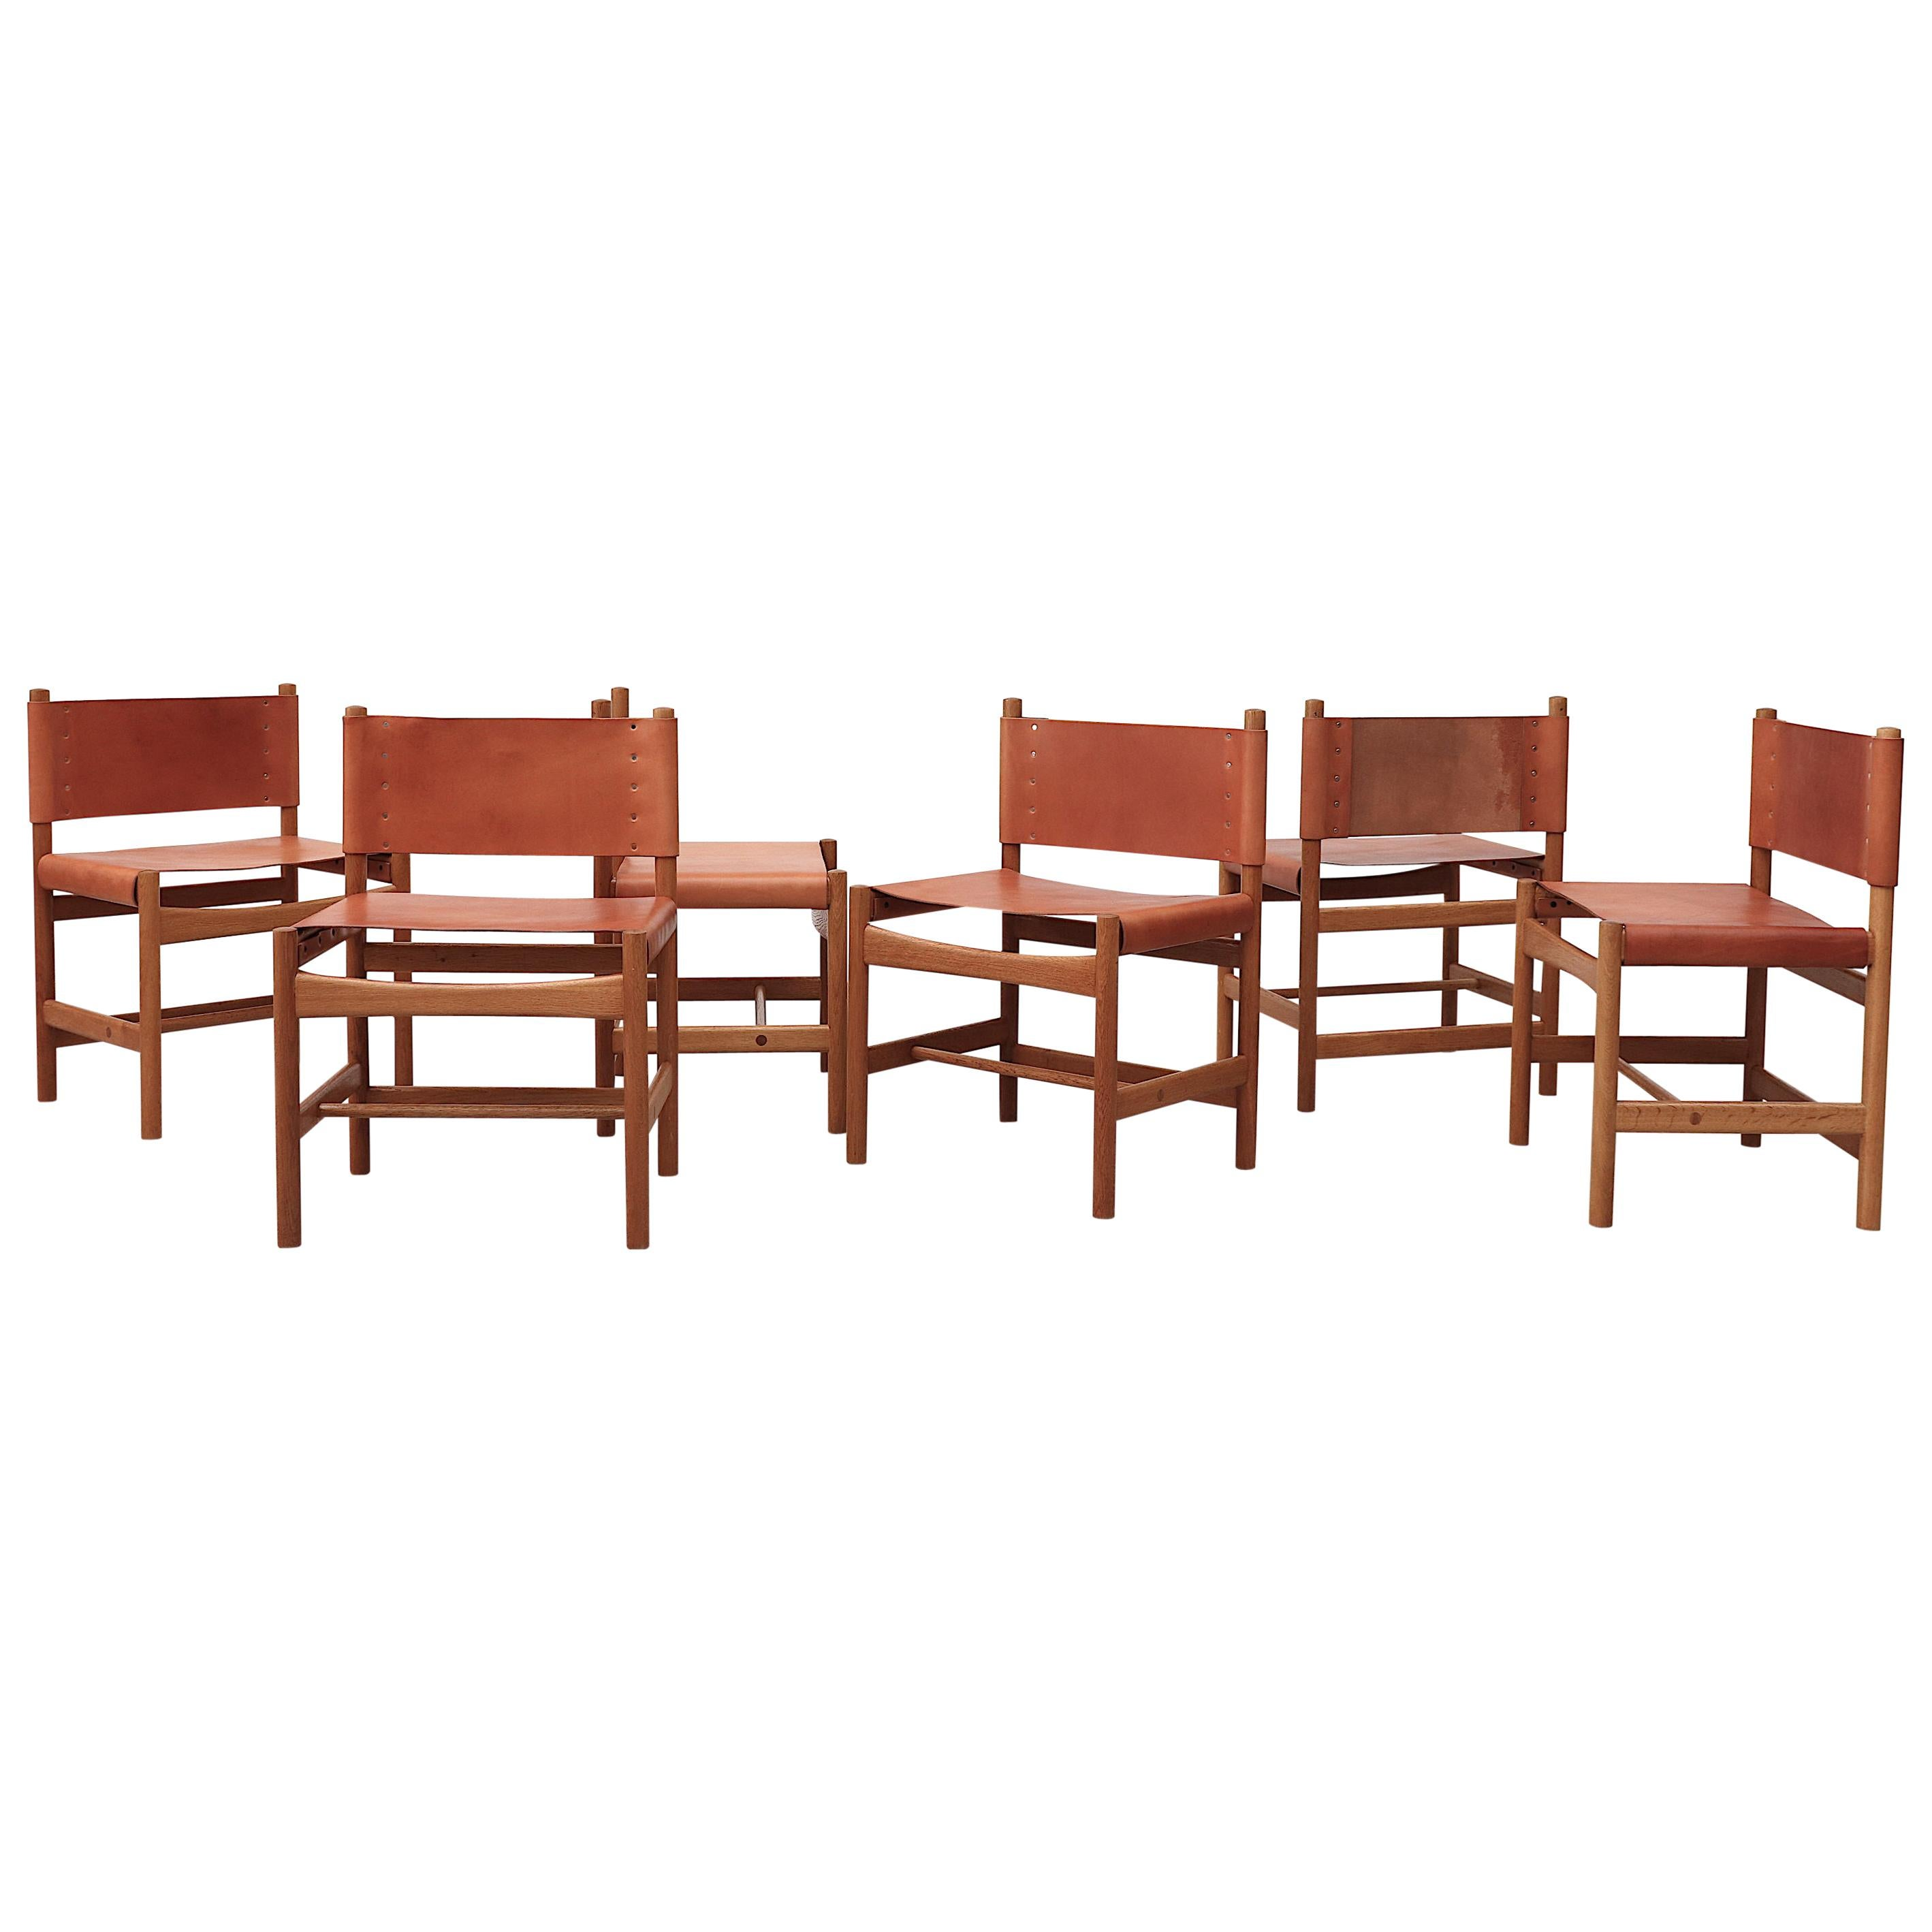 Antique And Vintage Dining Room Chairs   10,277 For Sale At ...